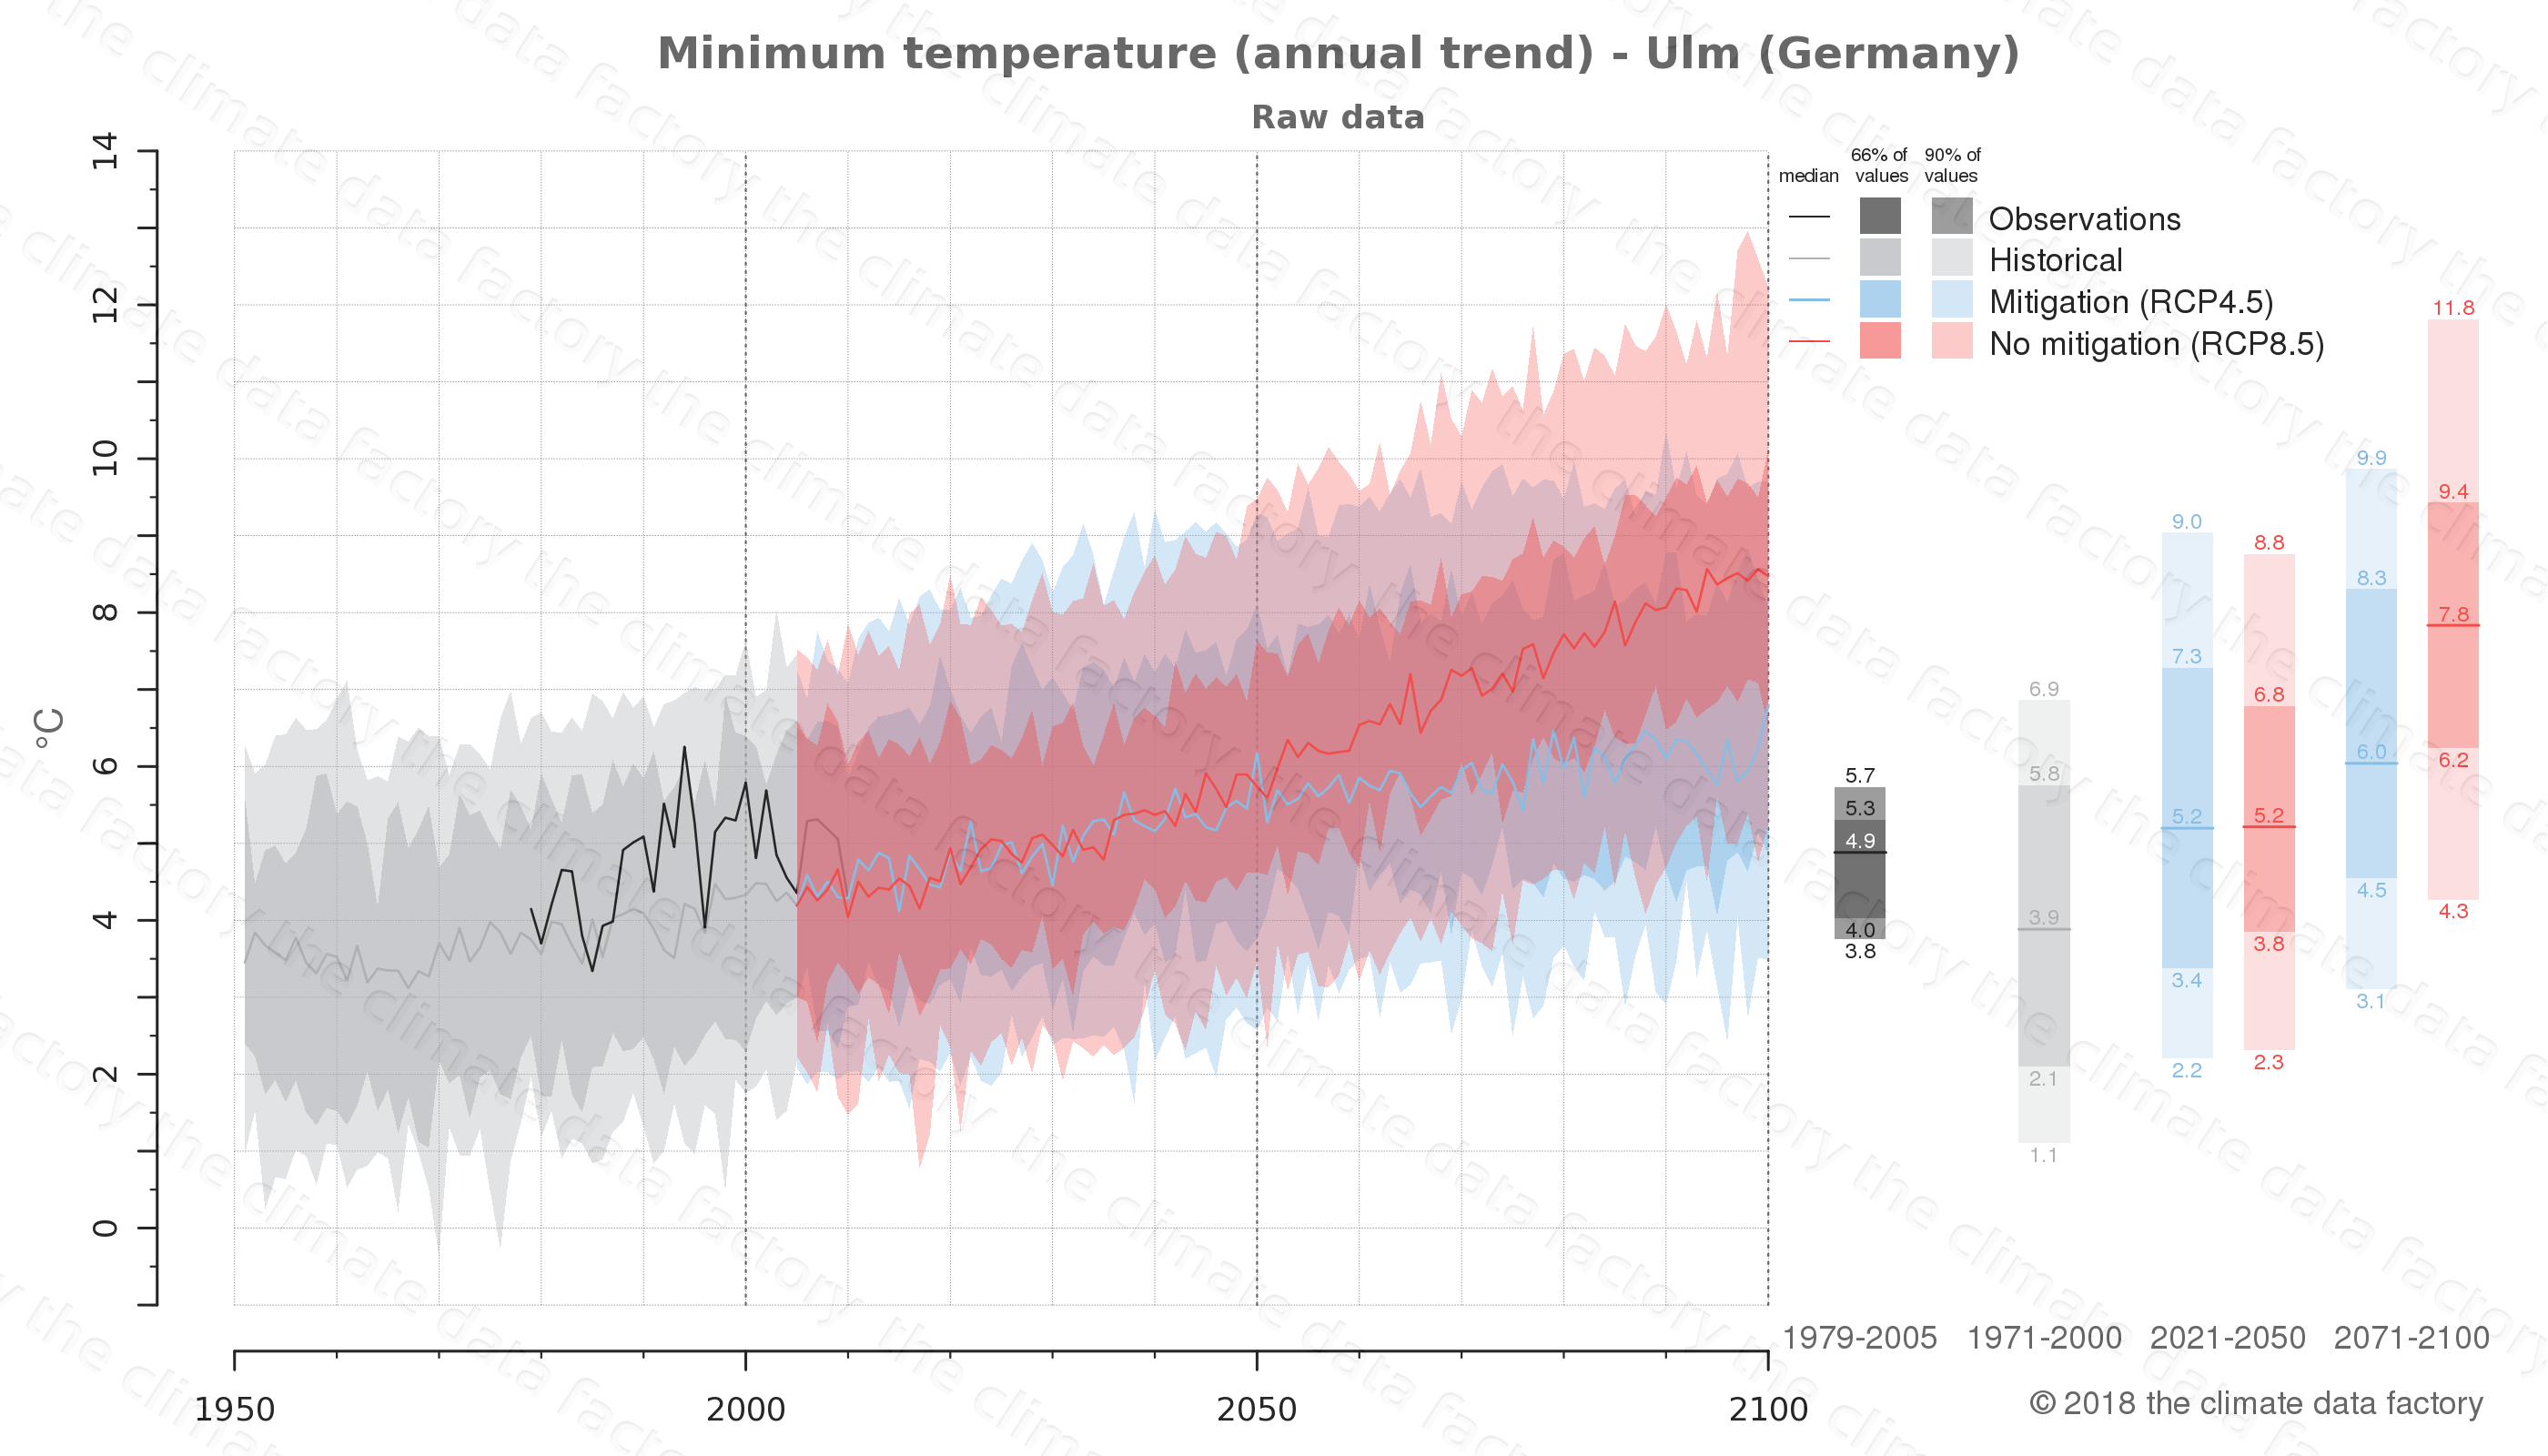 climate change data policy adaptation climate graph city data minimum-temperature ulm germany